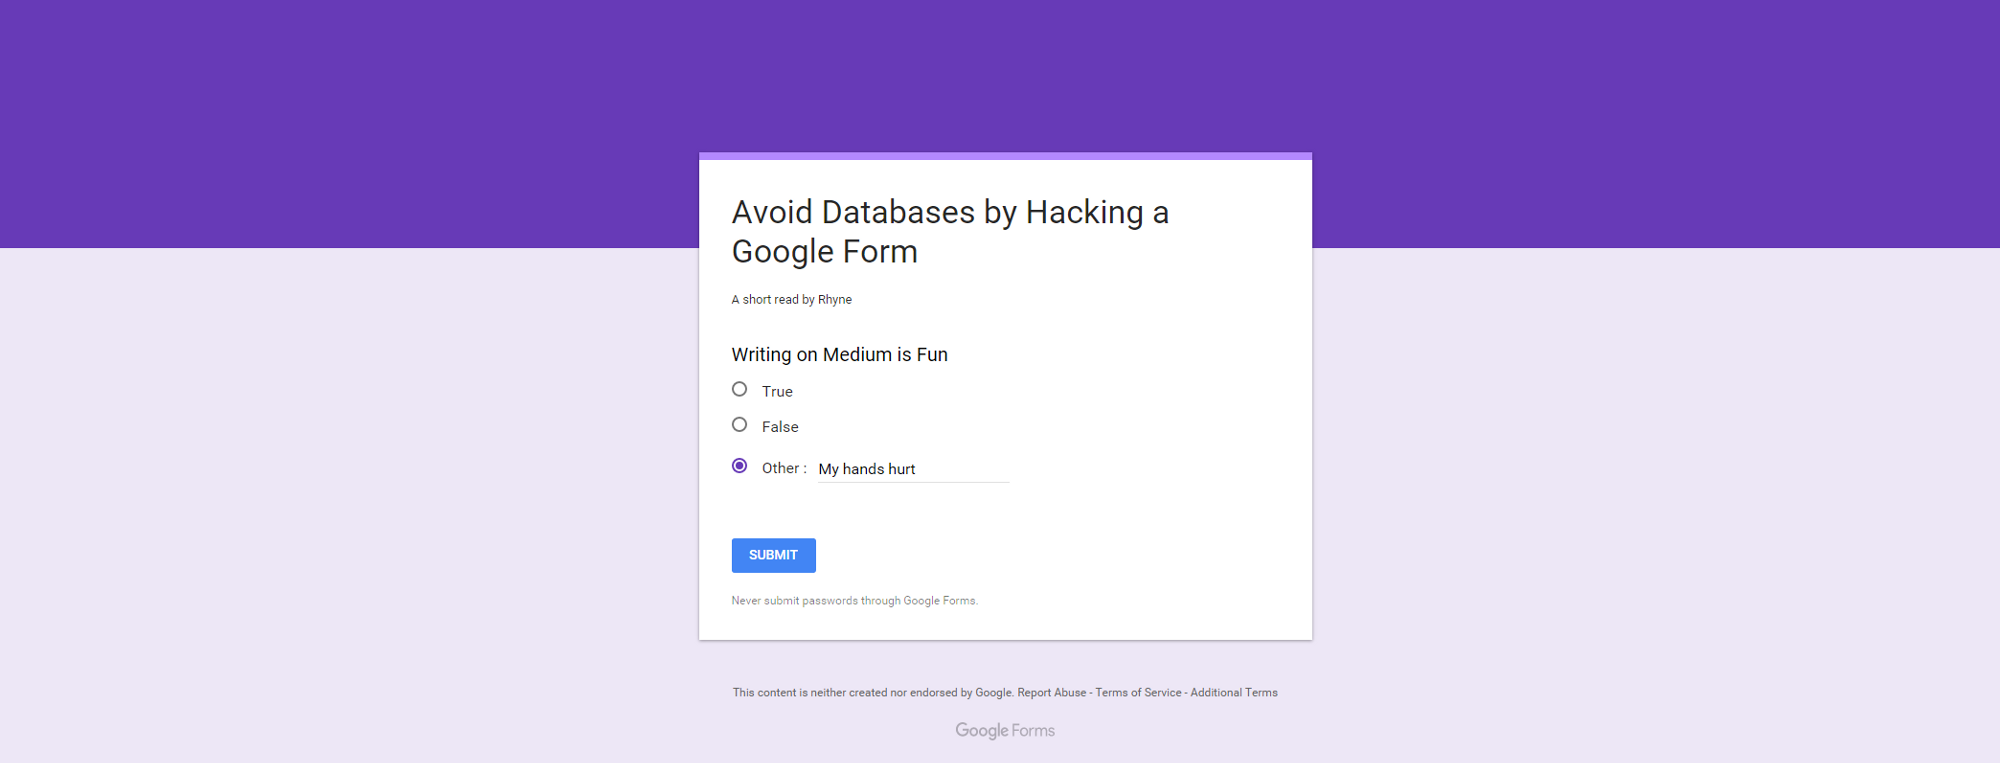 avoid databases by hacking a google form – codeburst